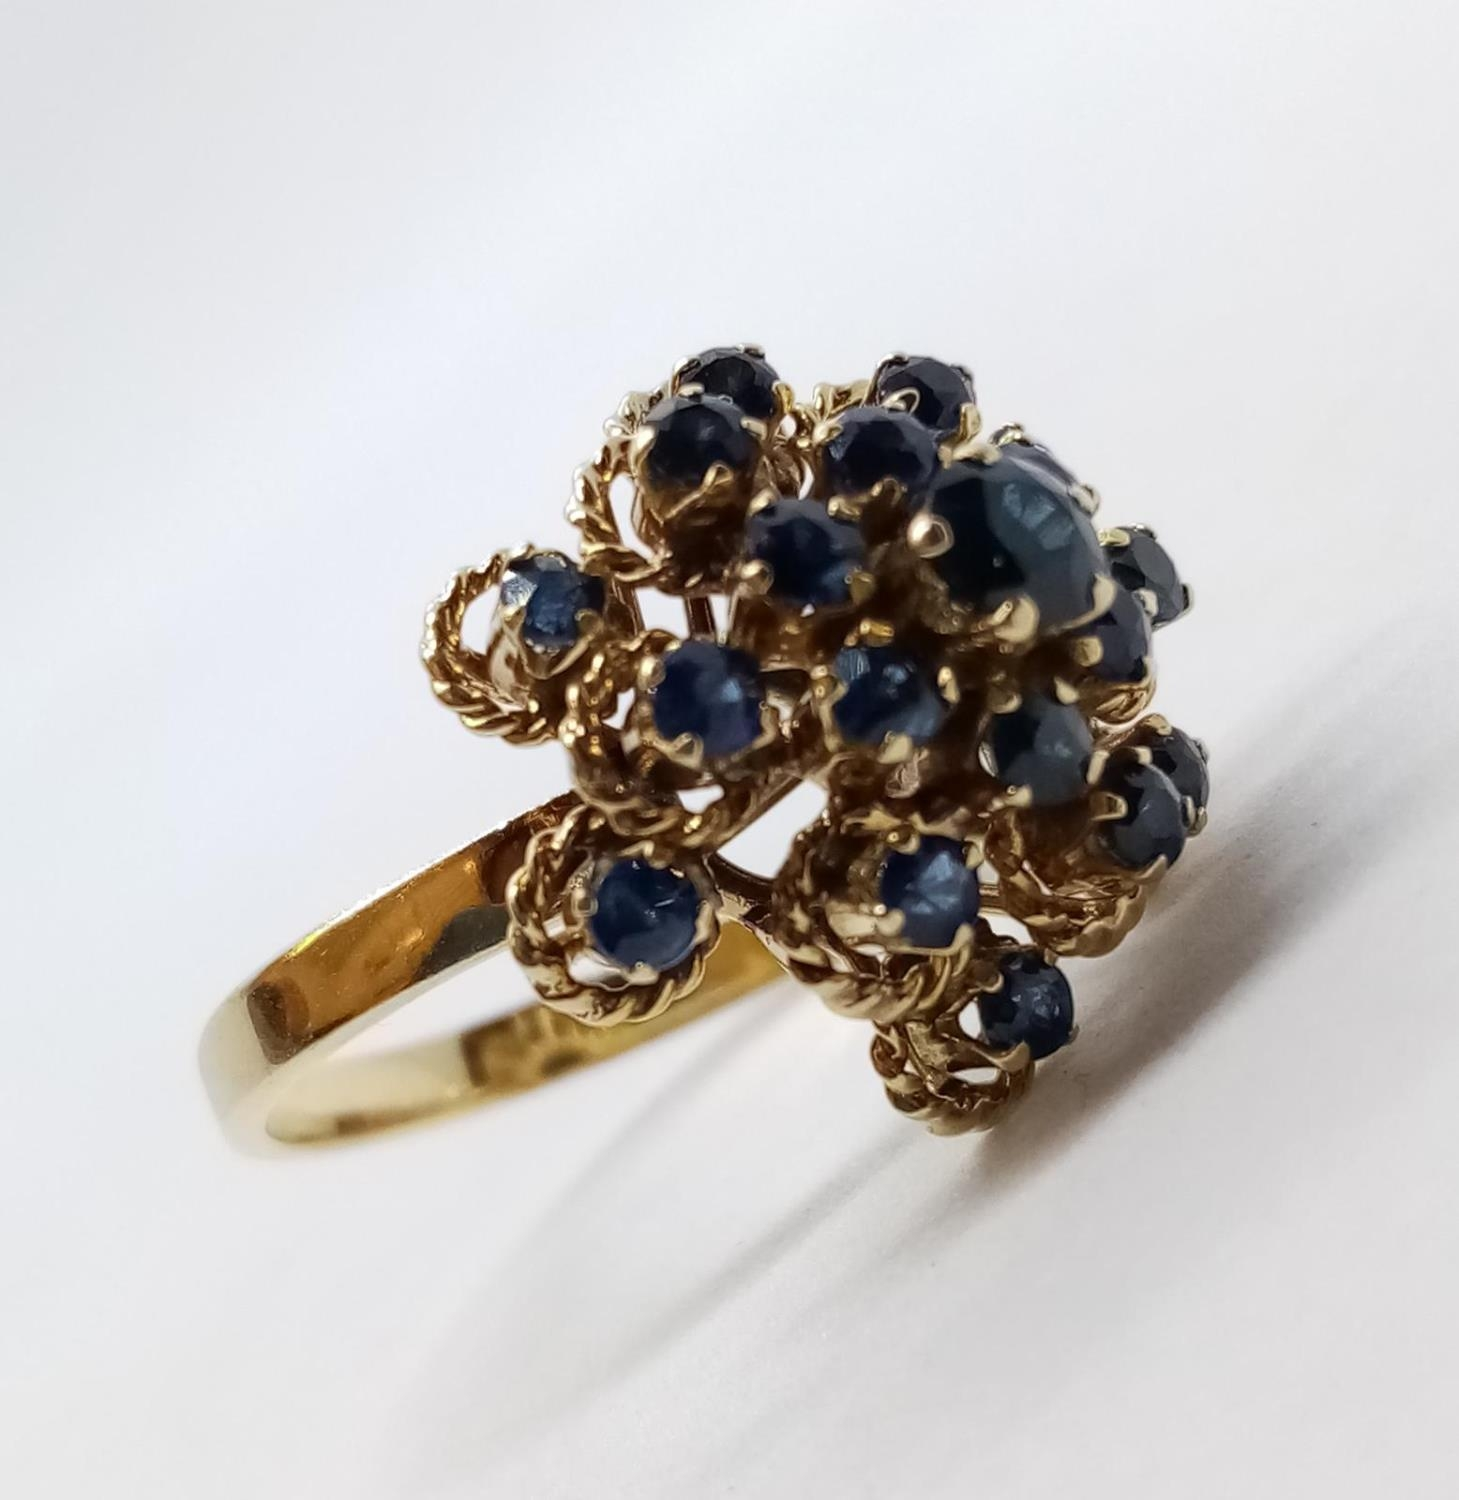 14ct Sapphire Cluster RING. 4.9g Size L. - Image 4 of 7